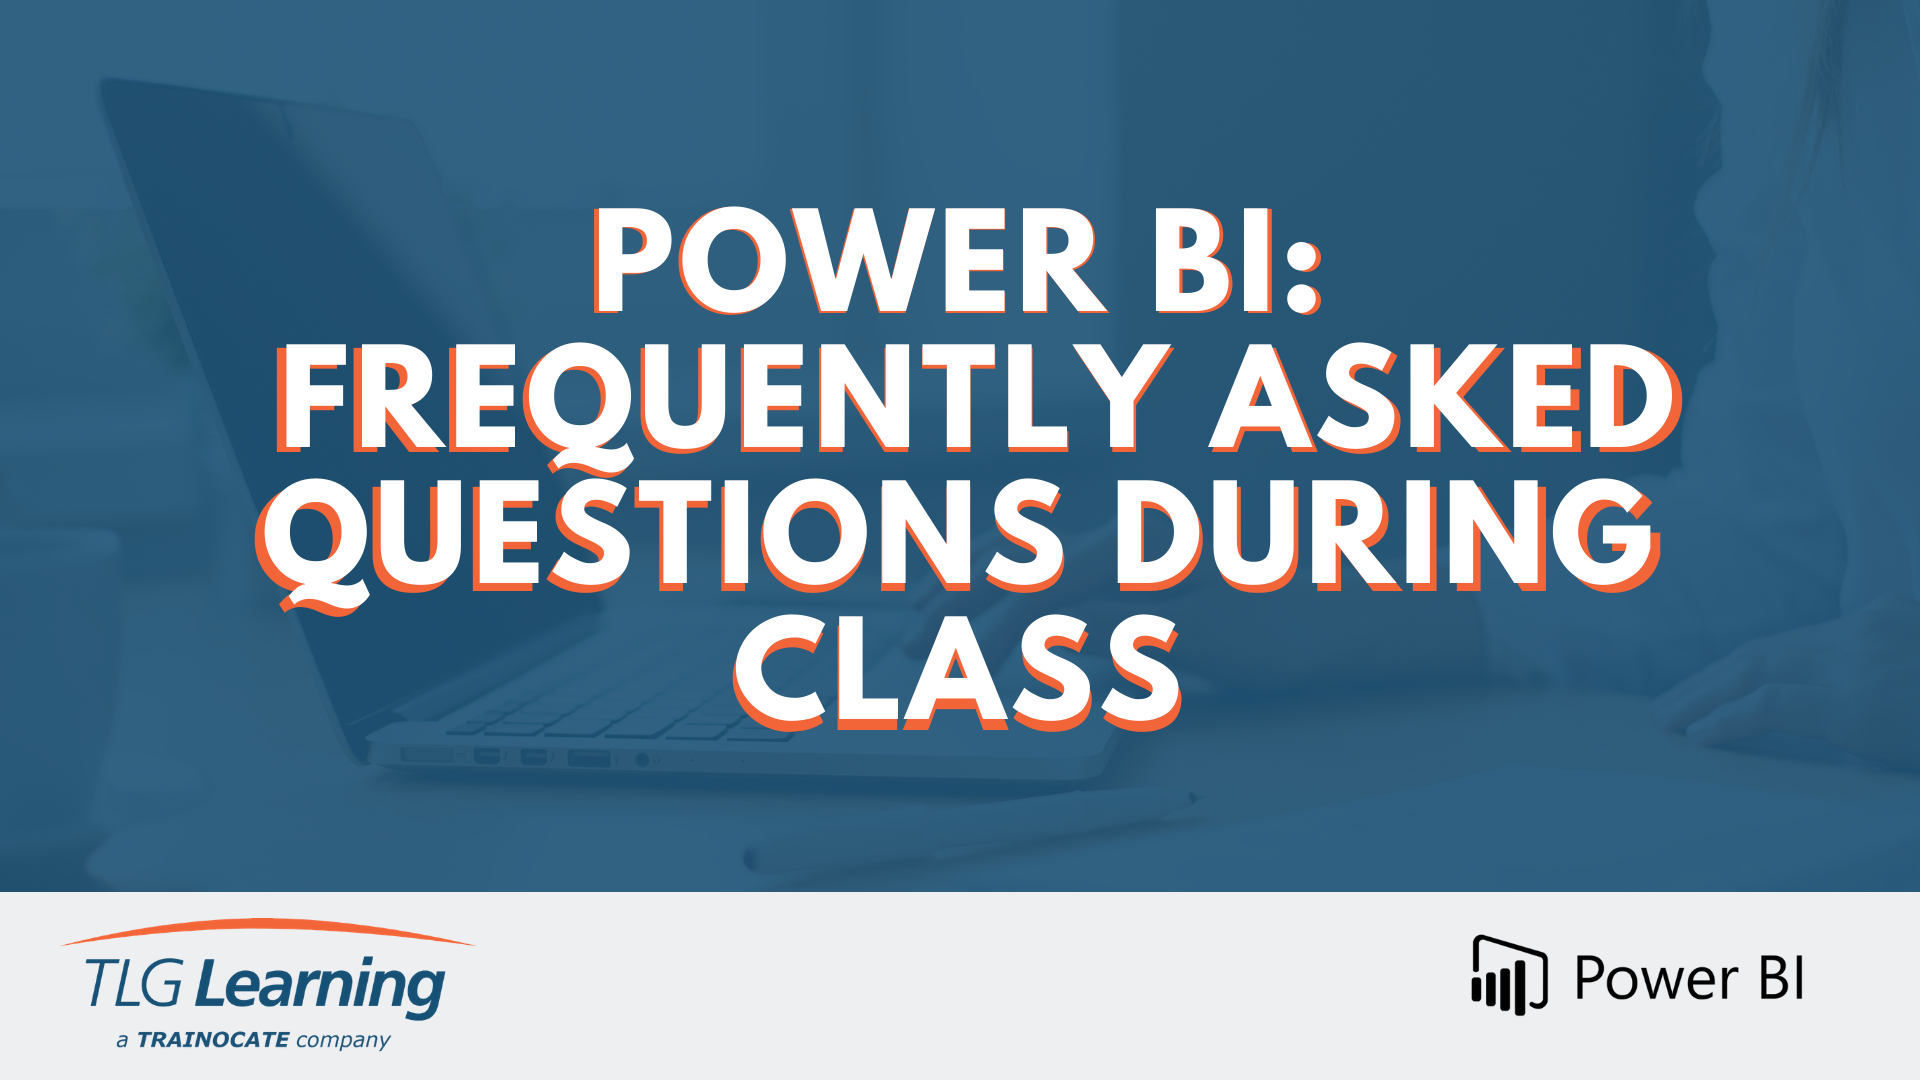 POWER BI FAQ BLOG IMAGE